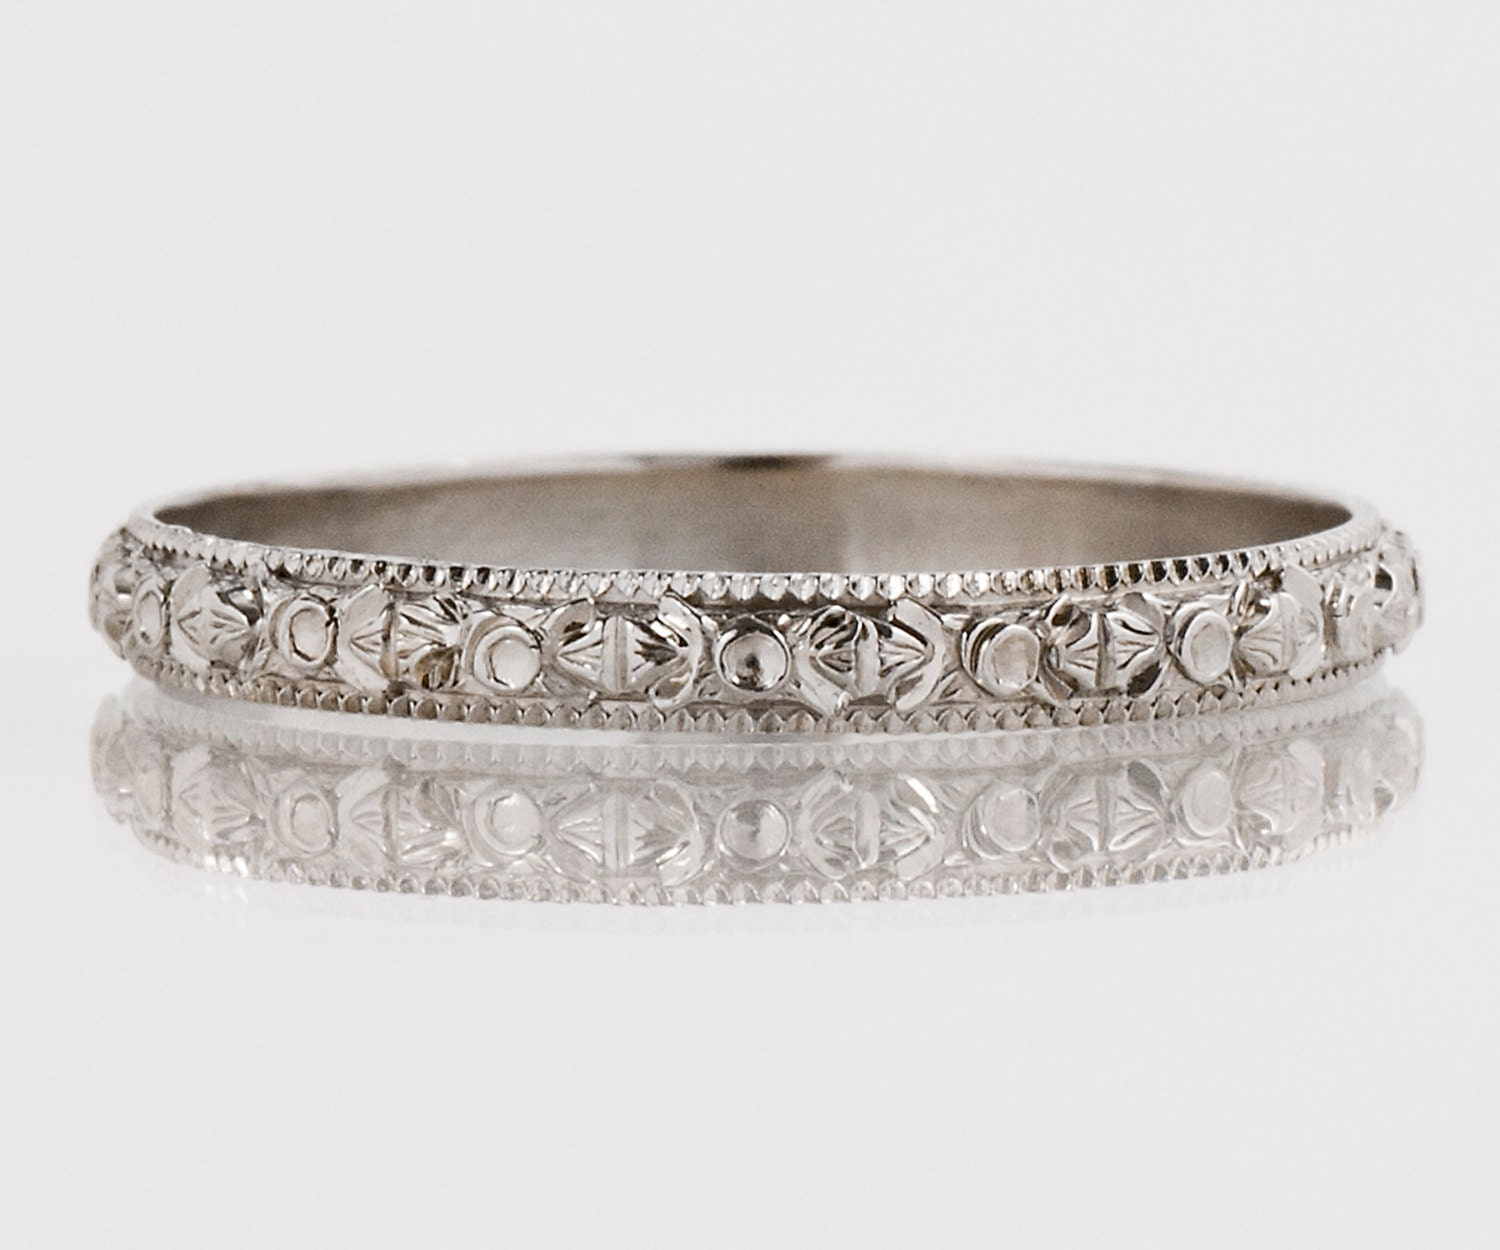 Antique Wedding Bands: Antique Wedding Band Antique 18k White Gold Etched Wedding